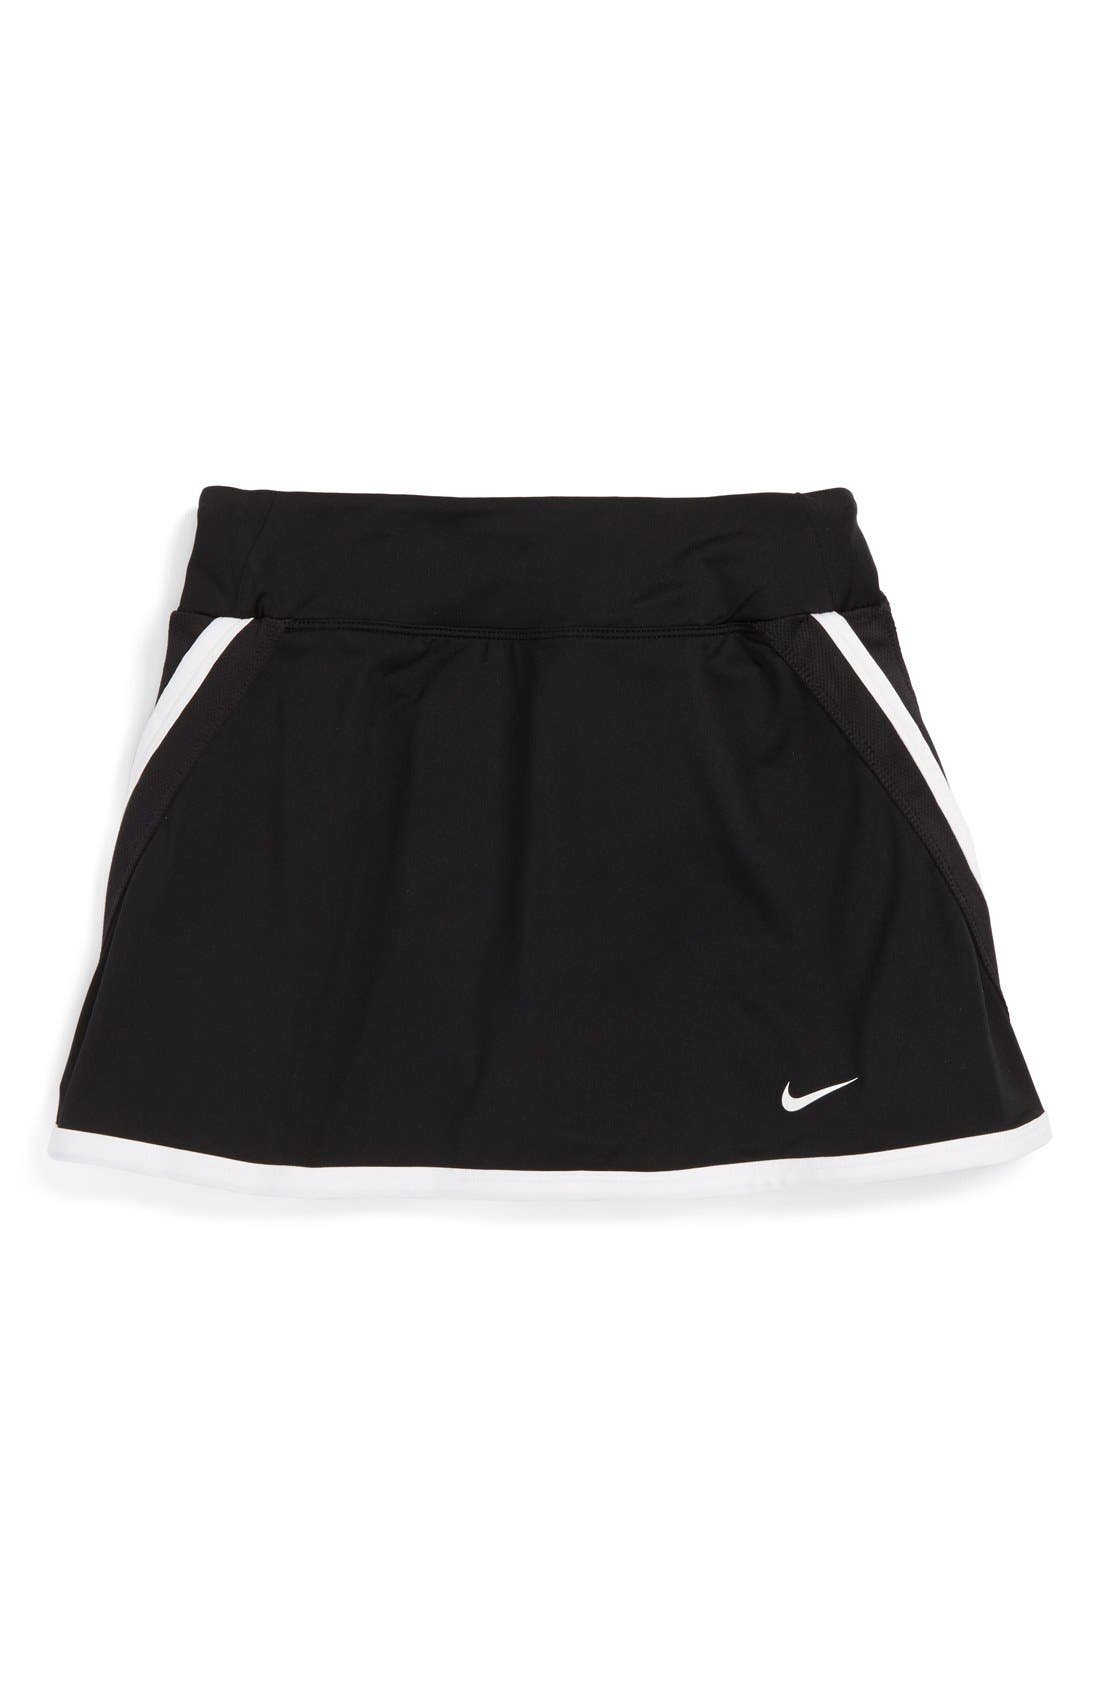 Alternate Image 1 Selected - Nike 'Power' Dri-FIT Tennis Skirt (Big Girls)